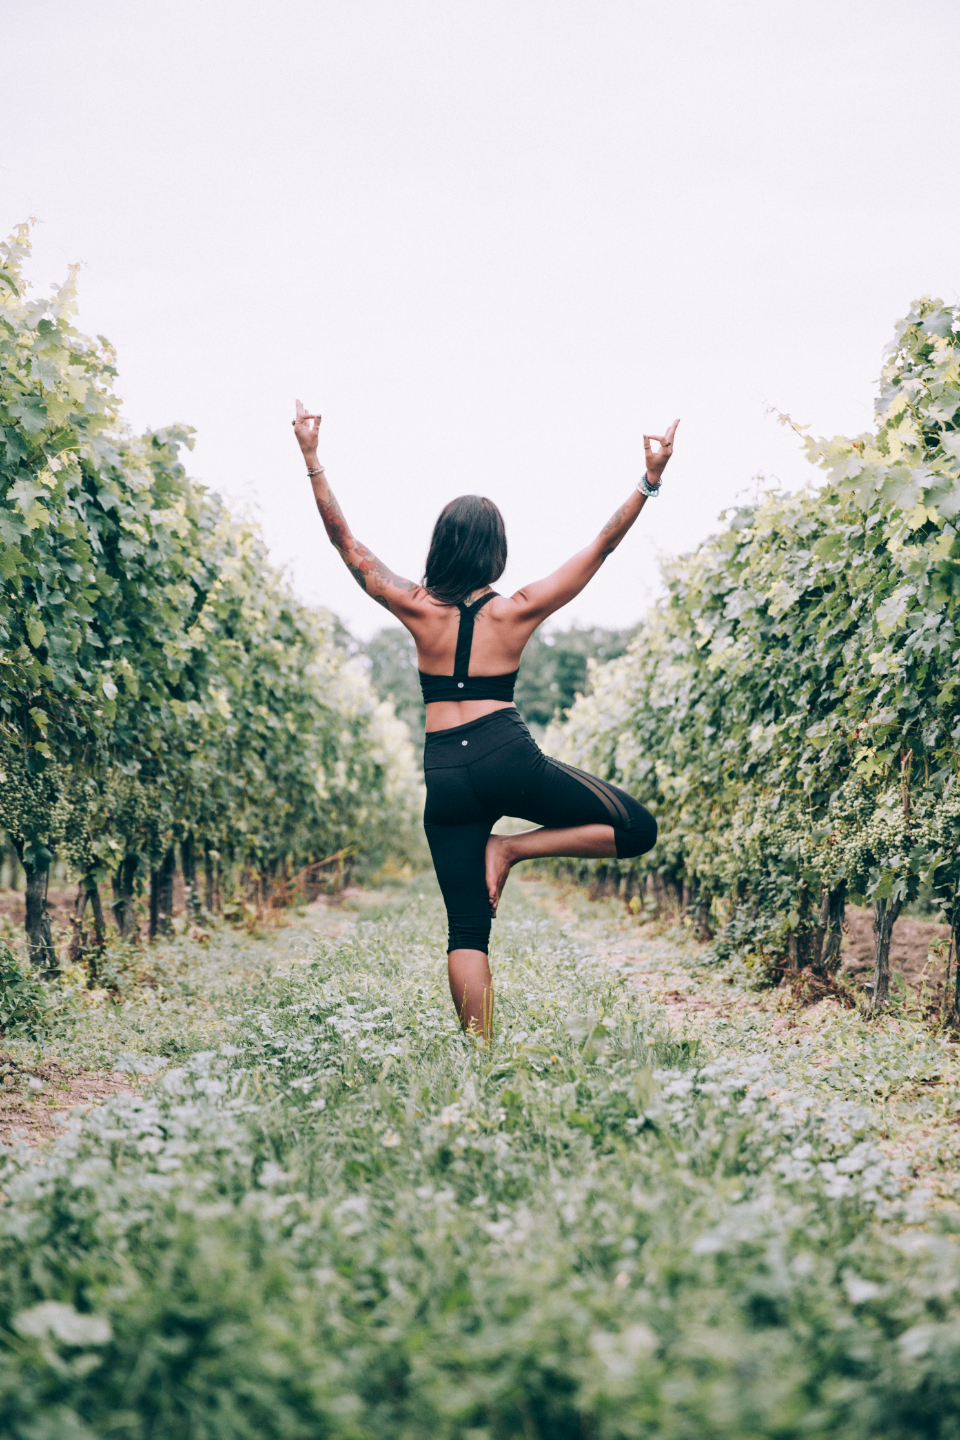 woman yoga tree pose vineyard outdoors nature fit active healthy female stretch exercise balance fitness workout freedom harmony energy meditation person relax sport wellness